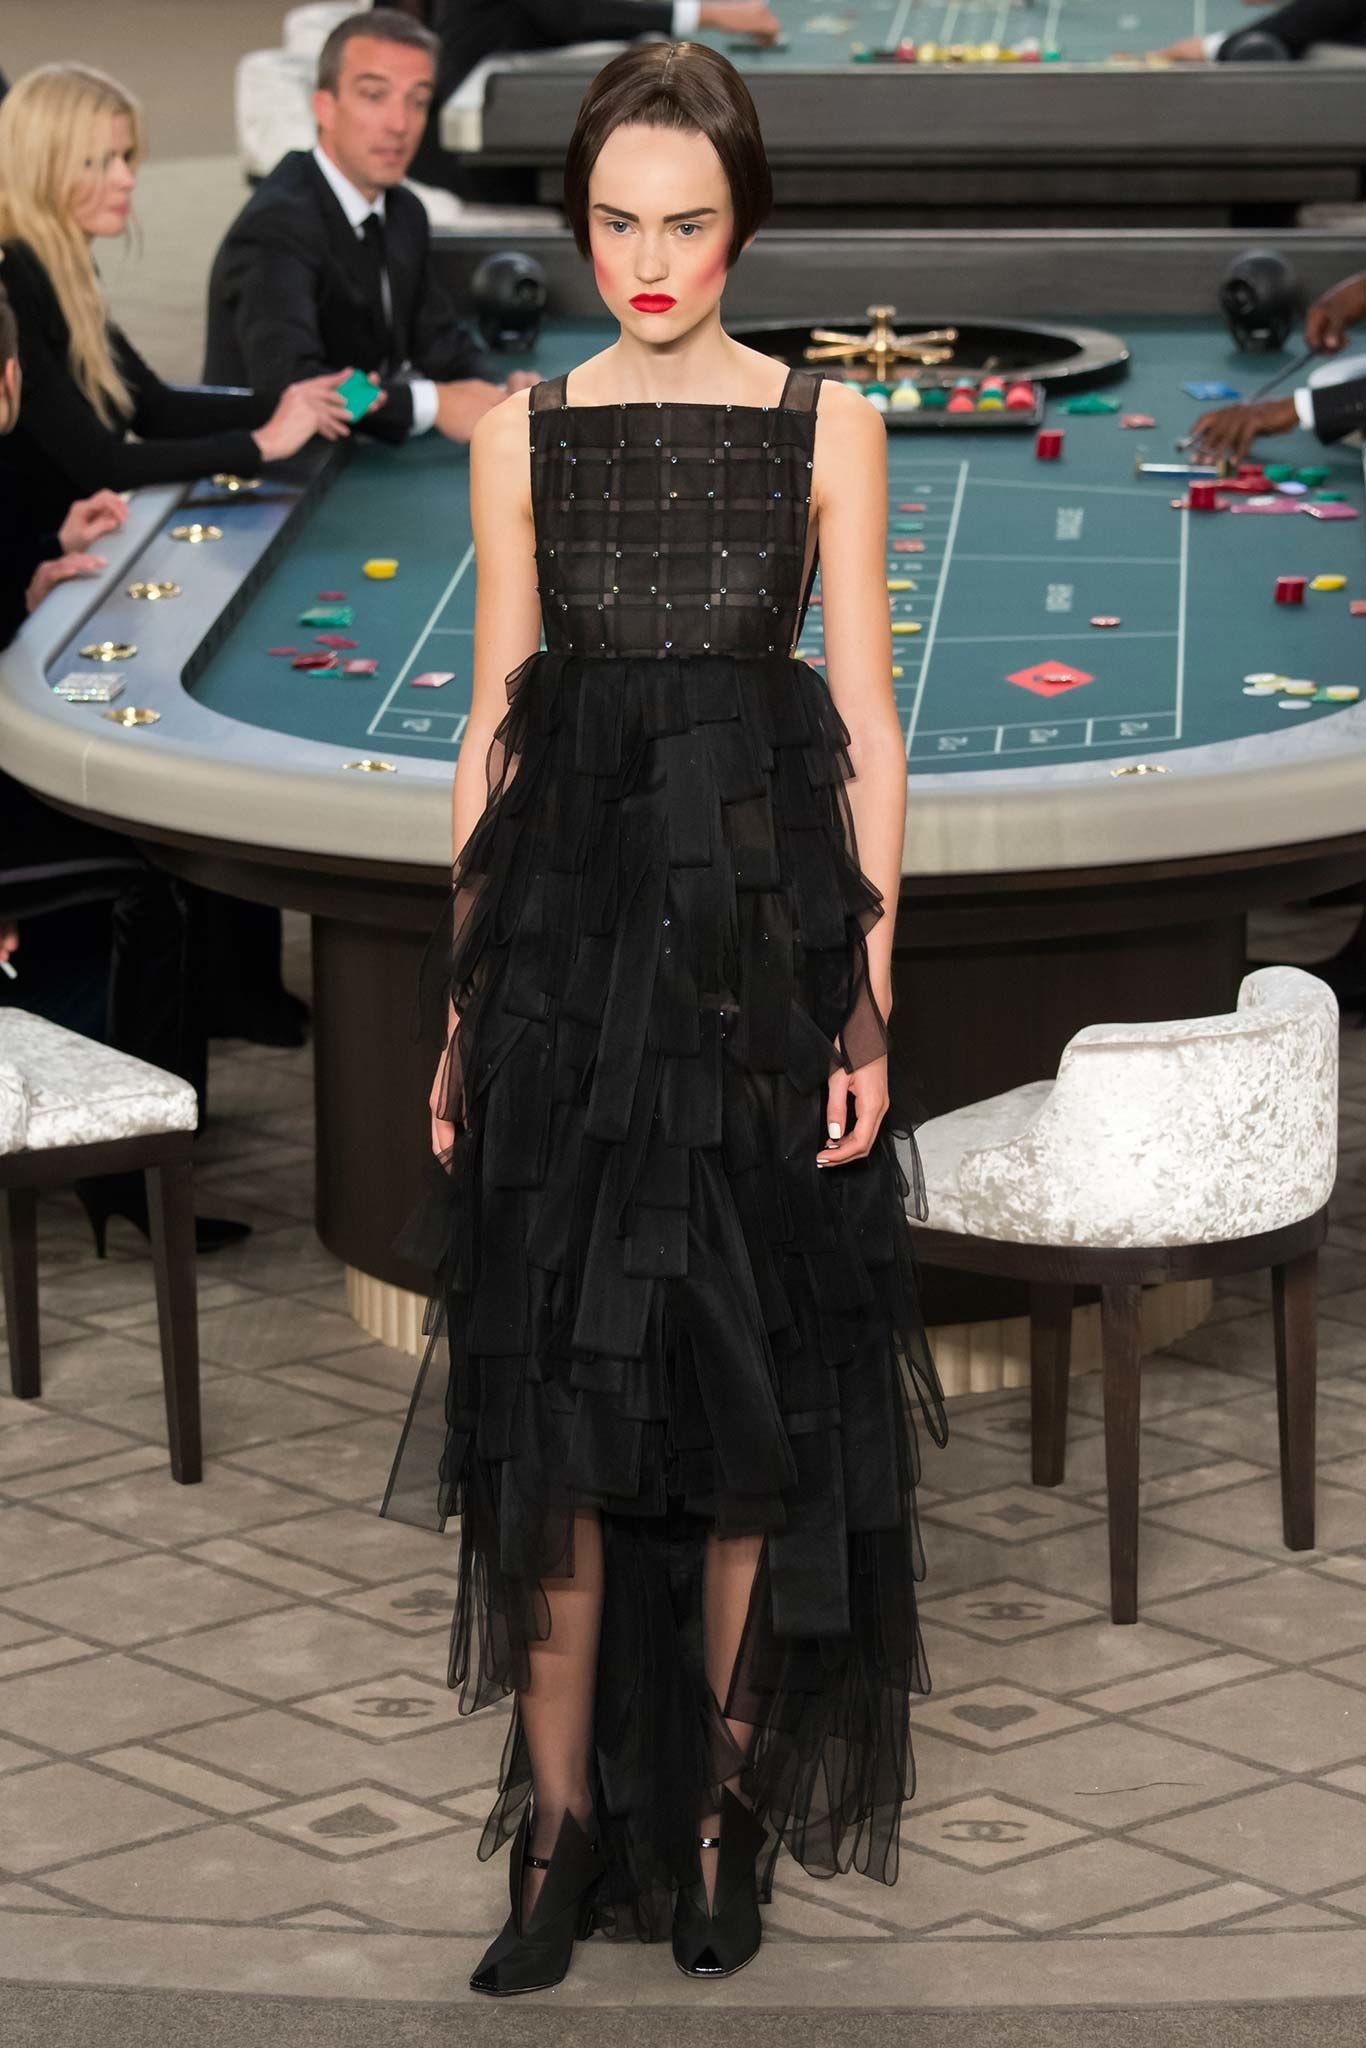 Chanel Fall 2015 Couture Fashion Show - Lexi Boling